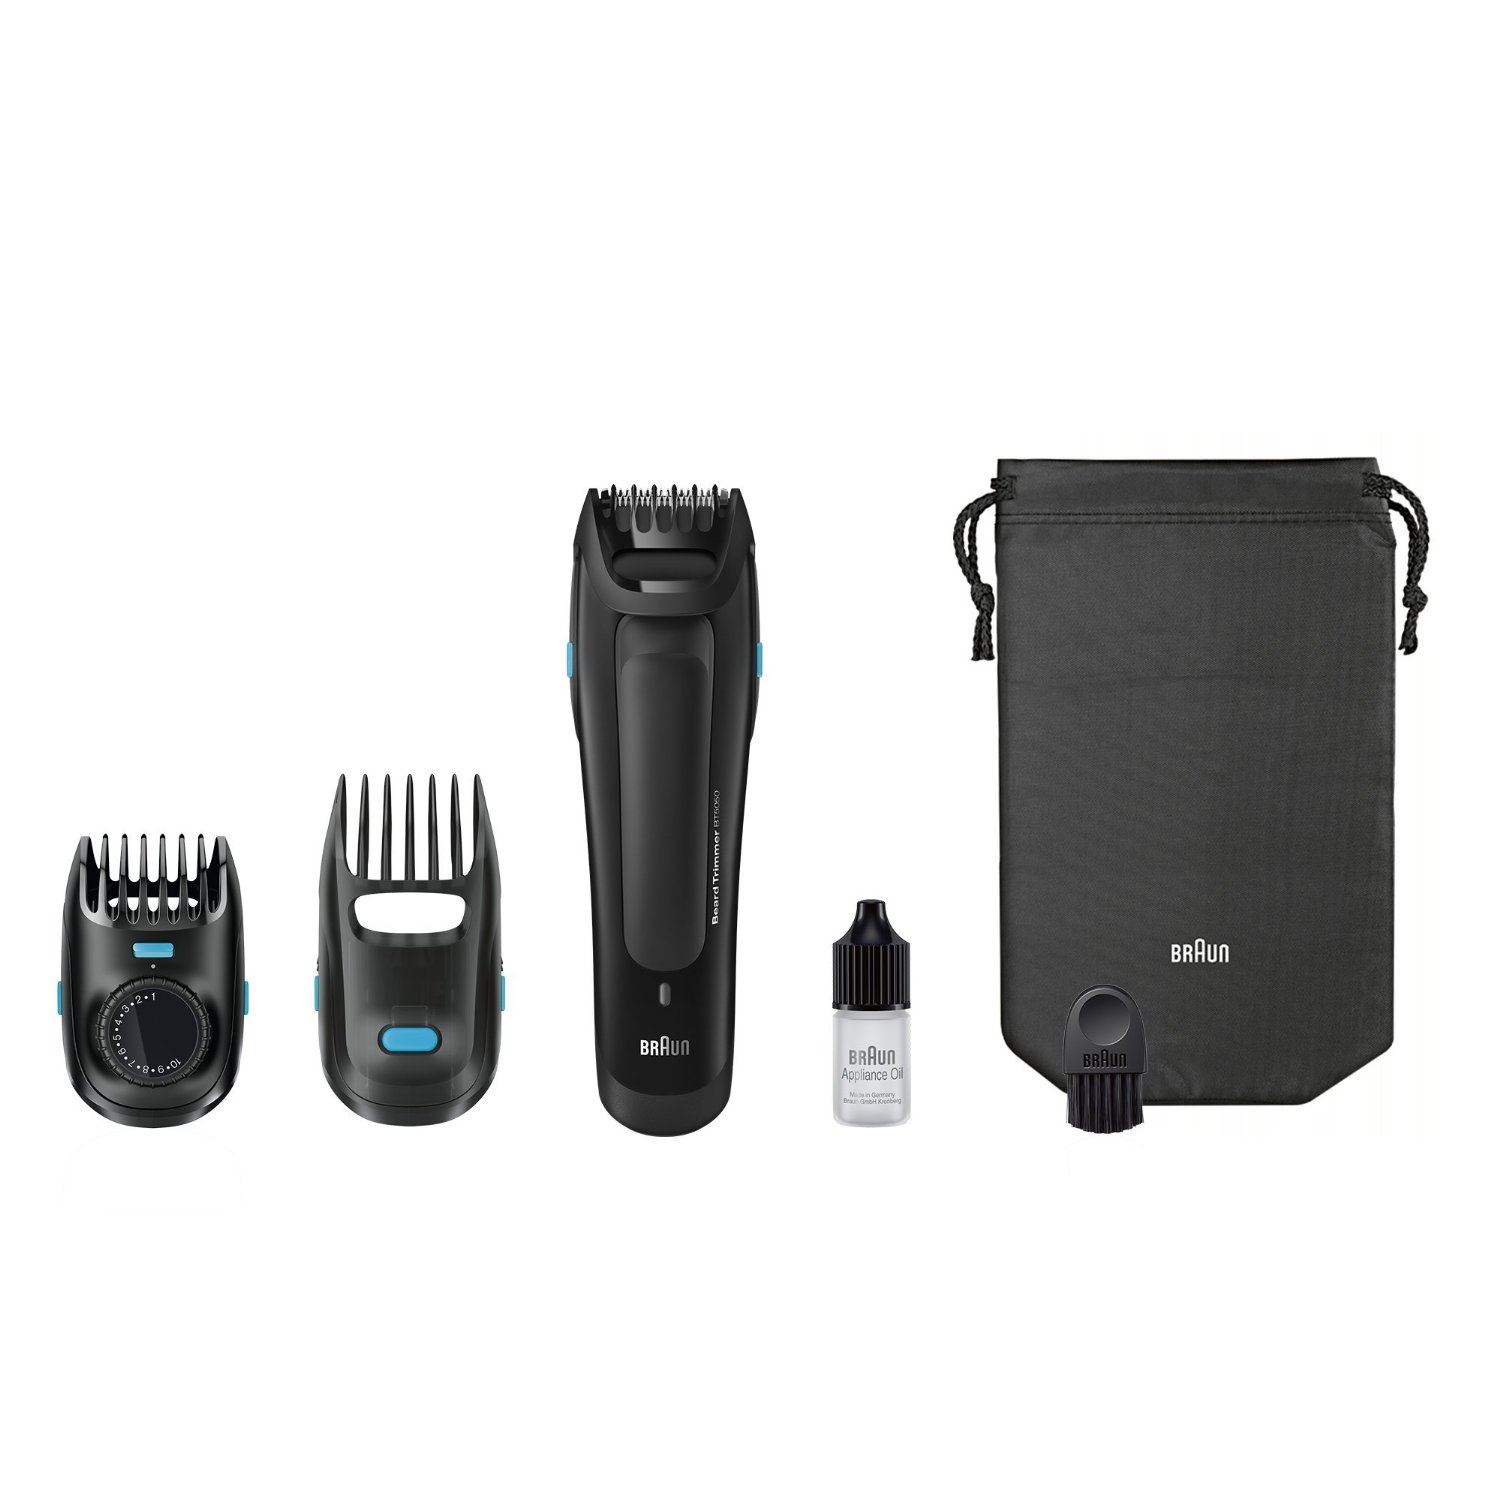 braun bt5050 beard trimmer ebay. Black Bedroom Furniture Sets. Home Design Ideas